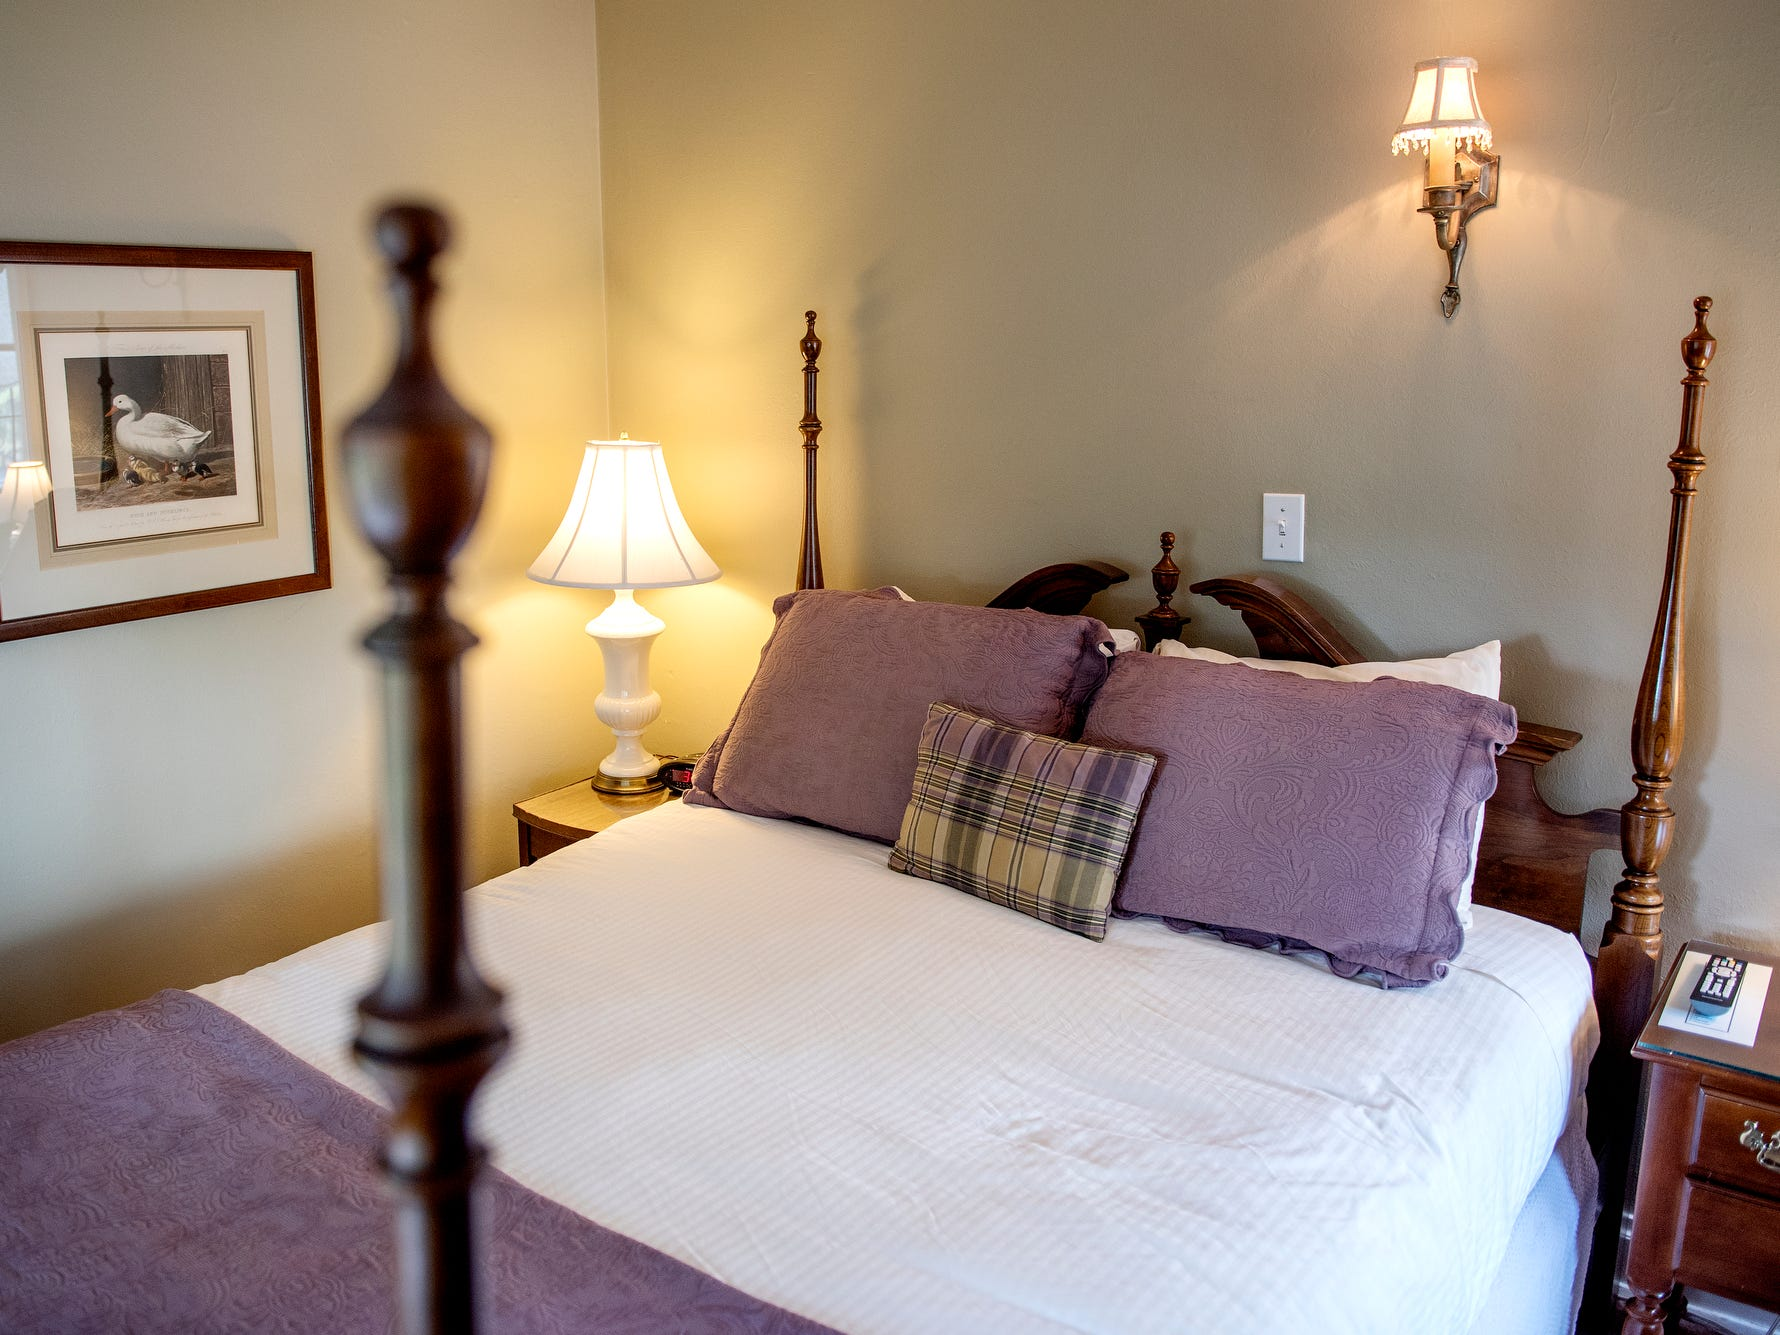 The bedroom inside the Bath suite at the English Inn on Tuesday, Aug. 28, 2018, in Eaton Rapids. The 17-room mansion was once the home of Oldsmobile president Irving Reuter and his wife, Janet.